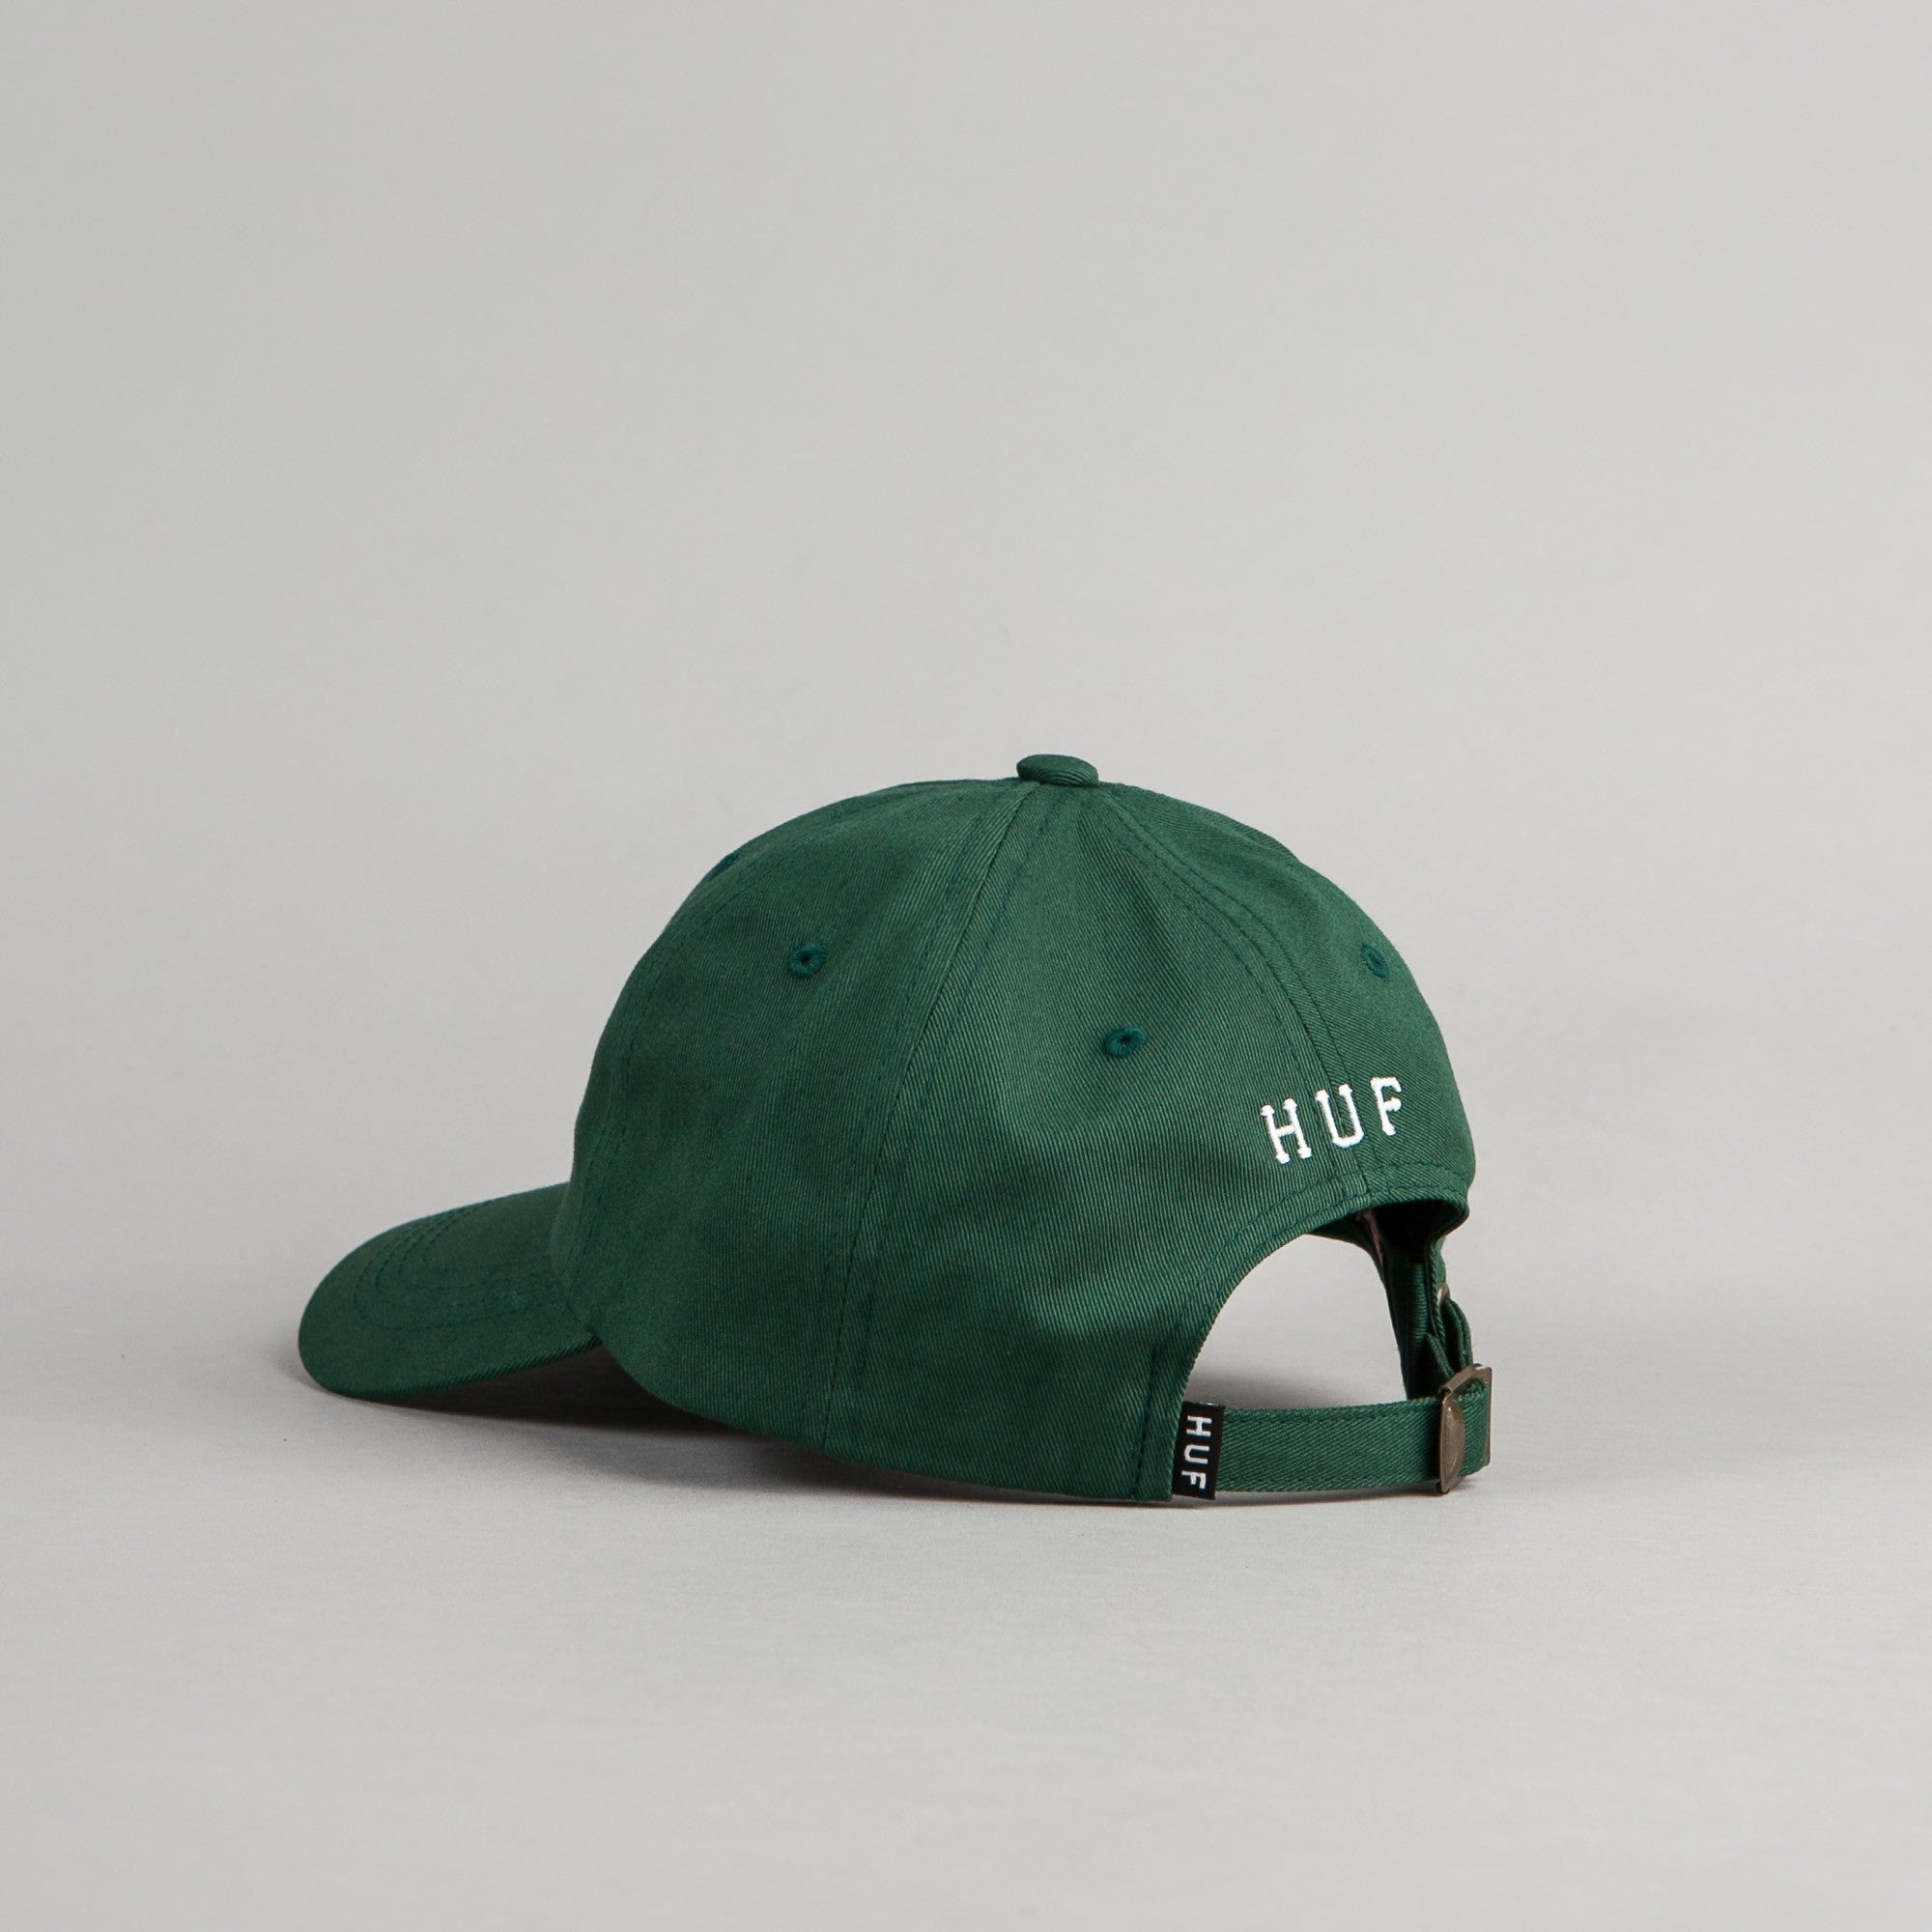 HUF Classic H Curved Visor Cap - Spruce / White